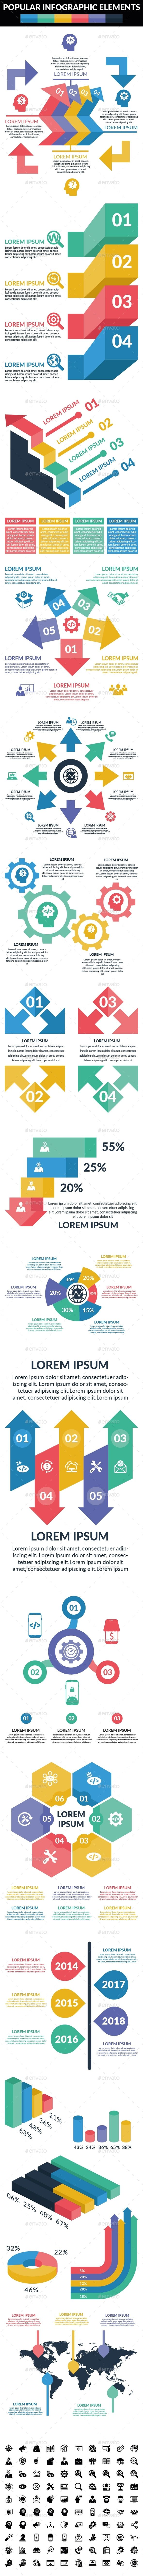 Popular Infographic Elements Template PSD, Vector EPS, AI Illustrator